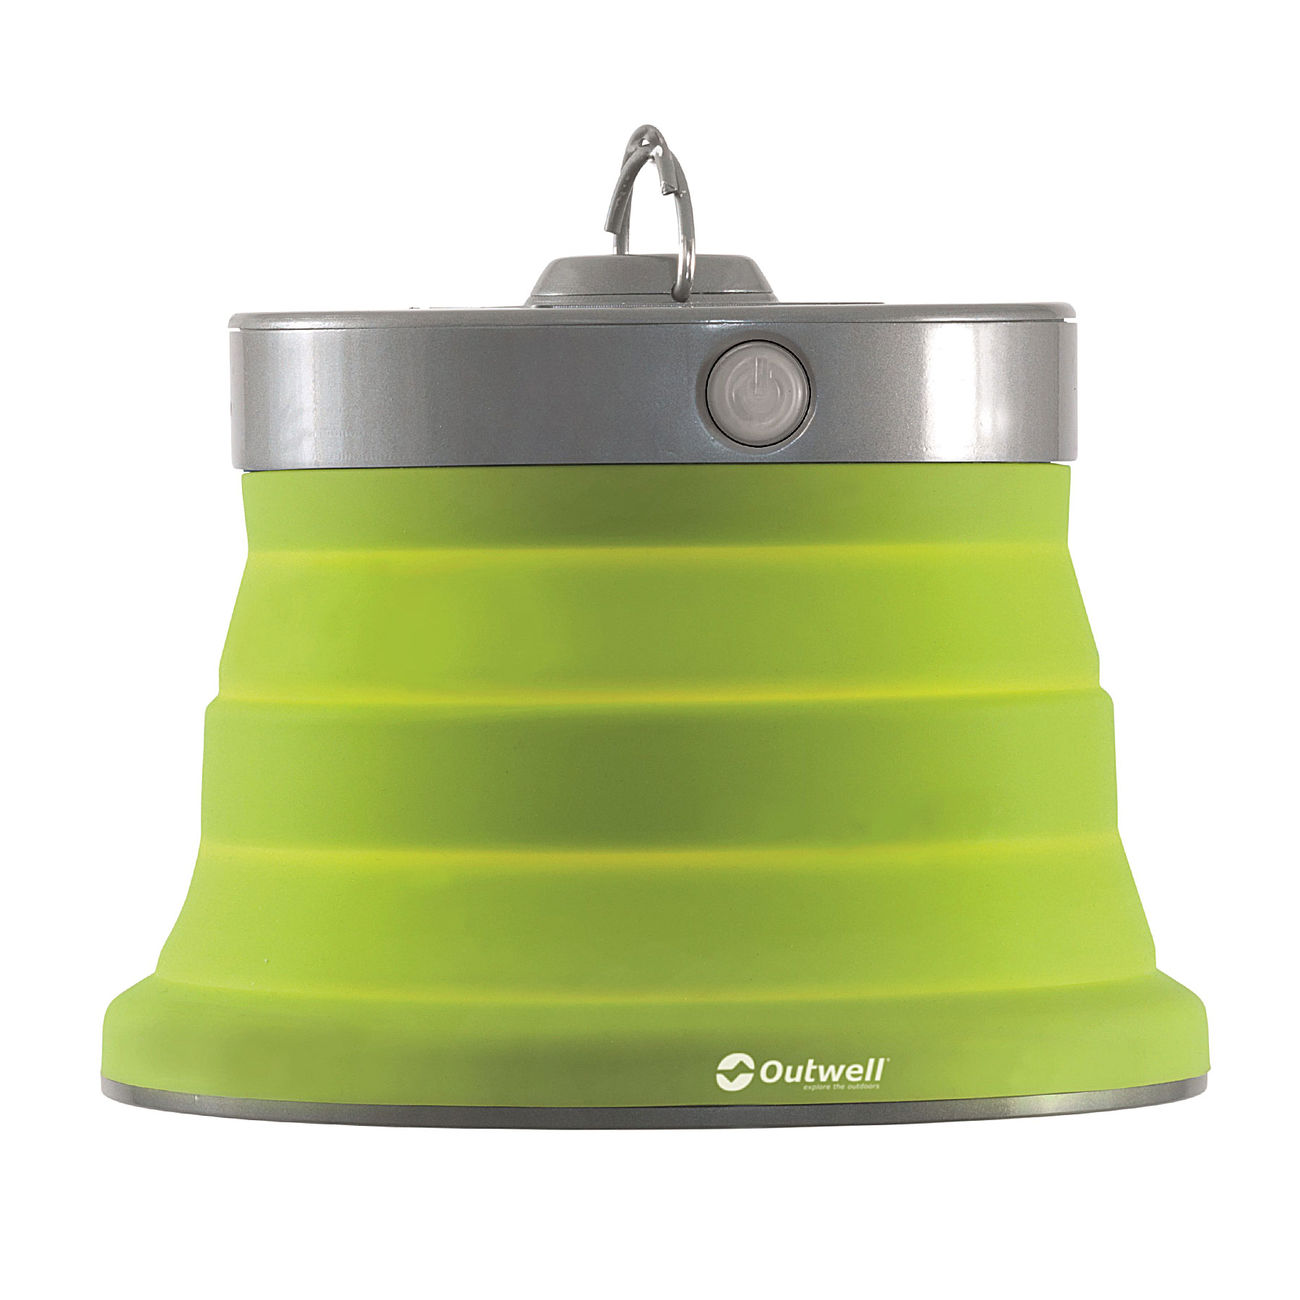 Outwell LED Lampe Polaris faltbar lime green 0